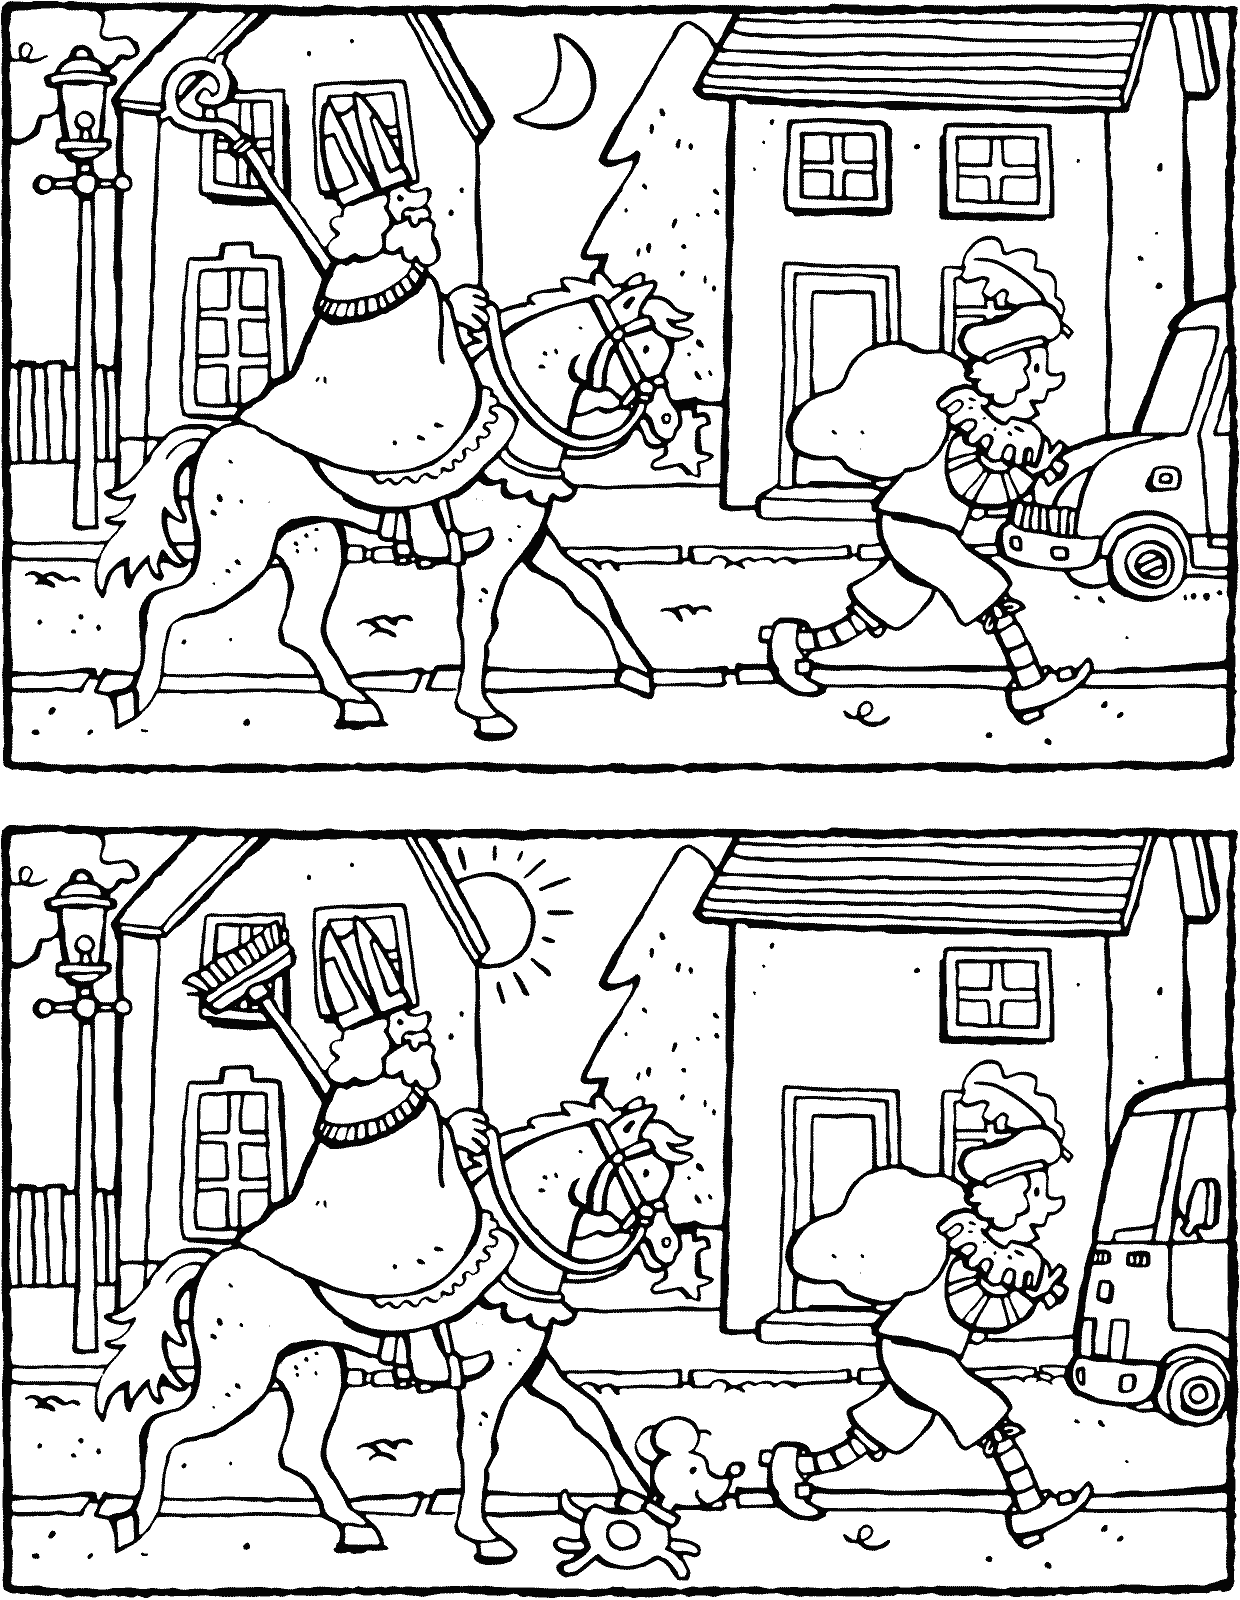 help Saint Nicholas to spot the five differences colouring page page drawing picture 01k